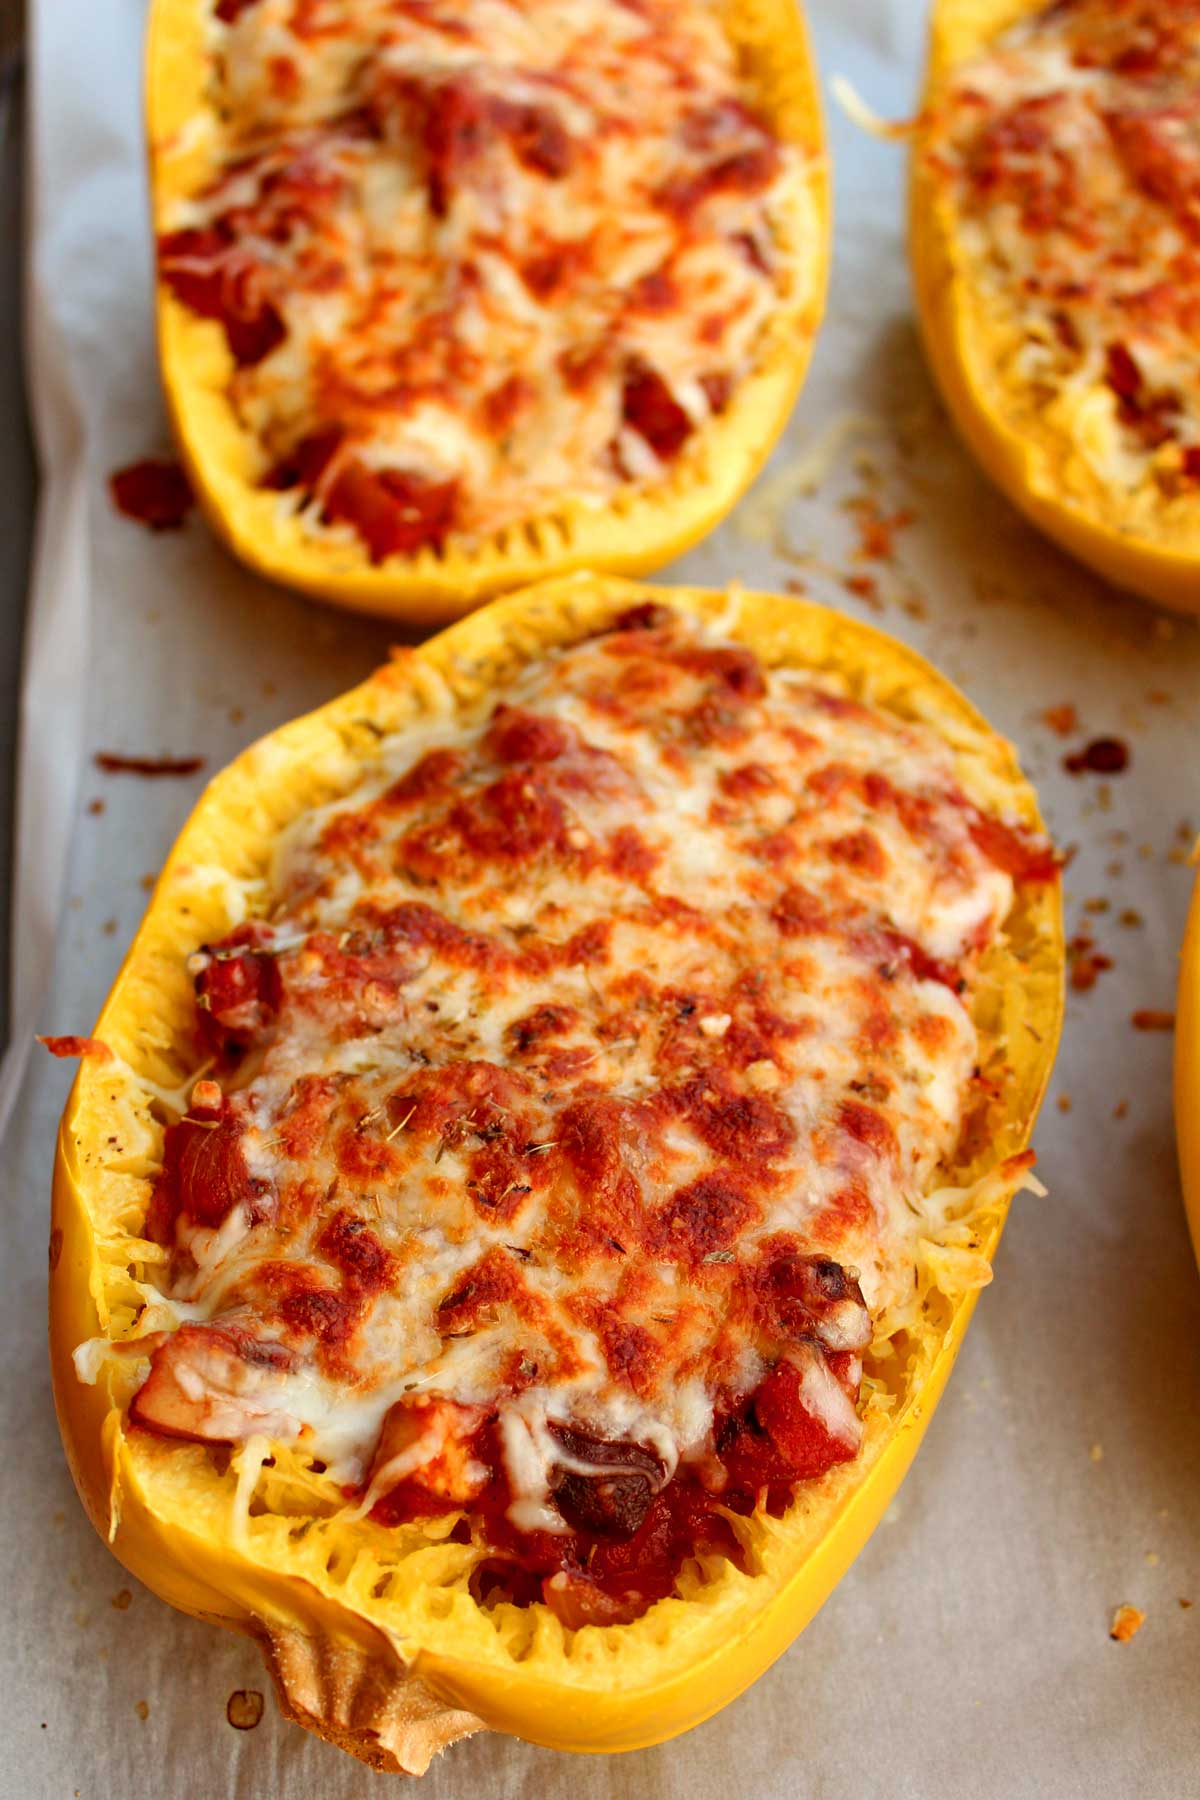 Lasagna-stuffed spaghetti squash are a healthy, low carb, vegetarian and gluten-free way to enjoy Italian food without the calories. Try this tonight! | TheMountainKitchen.com